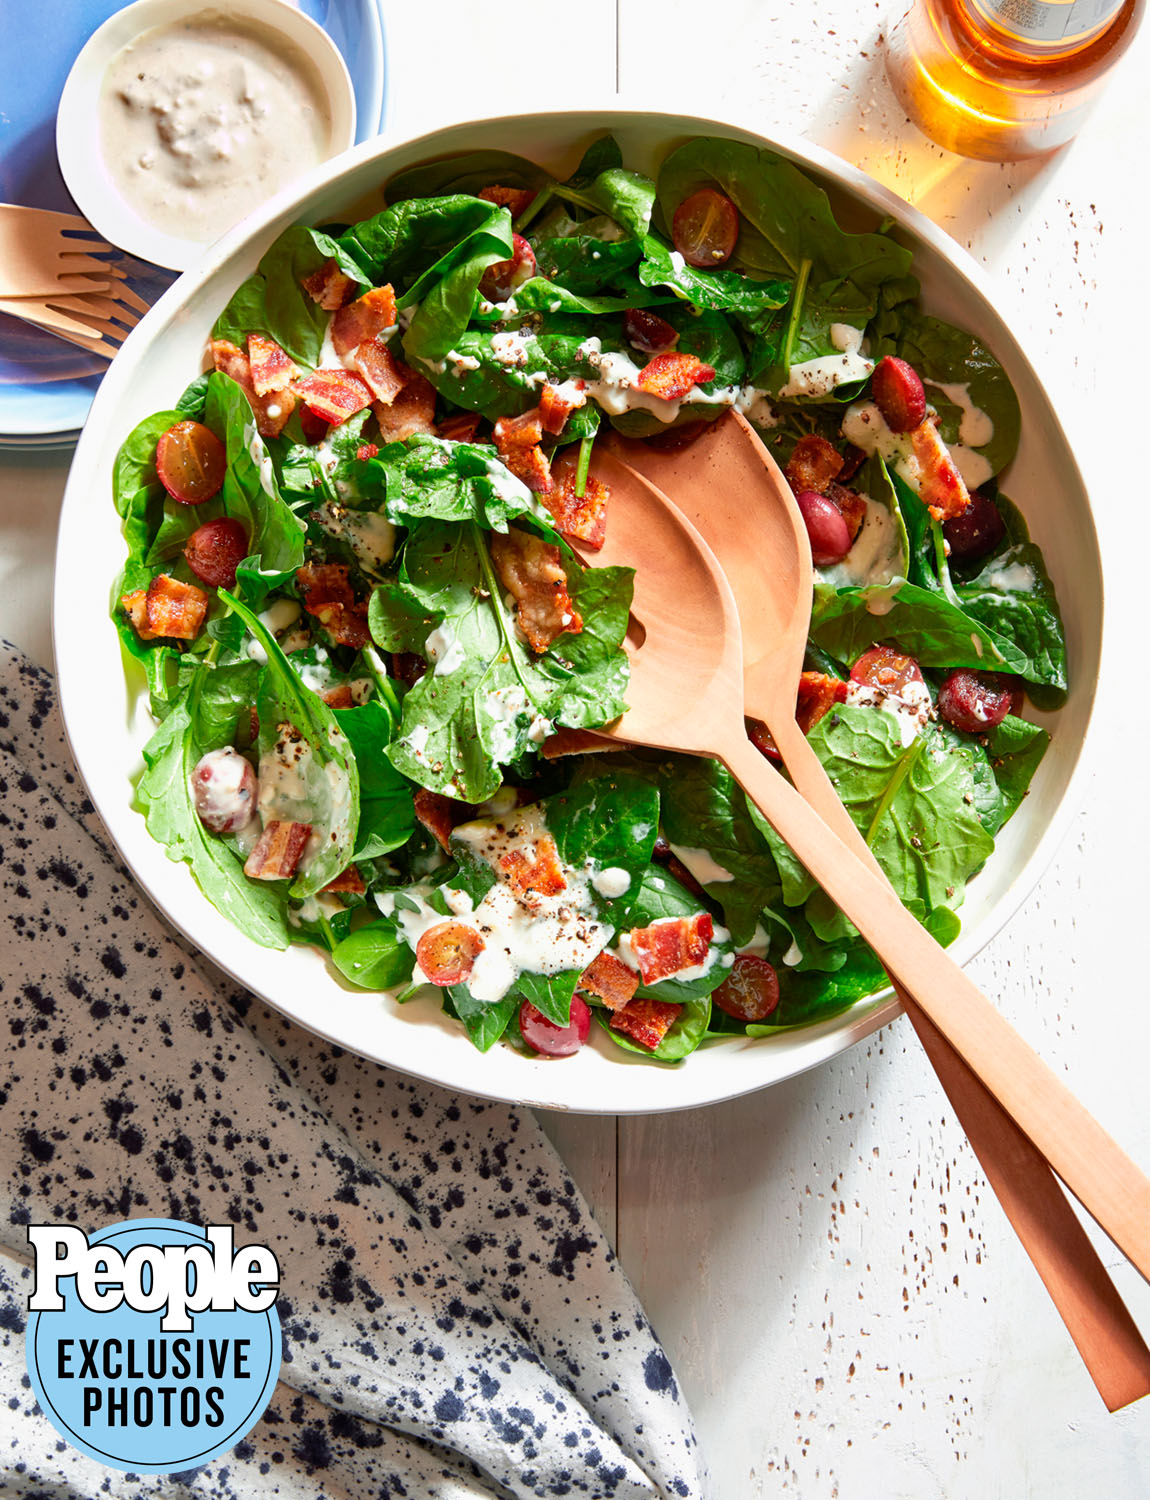 Melissa Clark's Spinach & Grape Salad with Blue Cheese Dressing